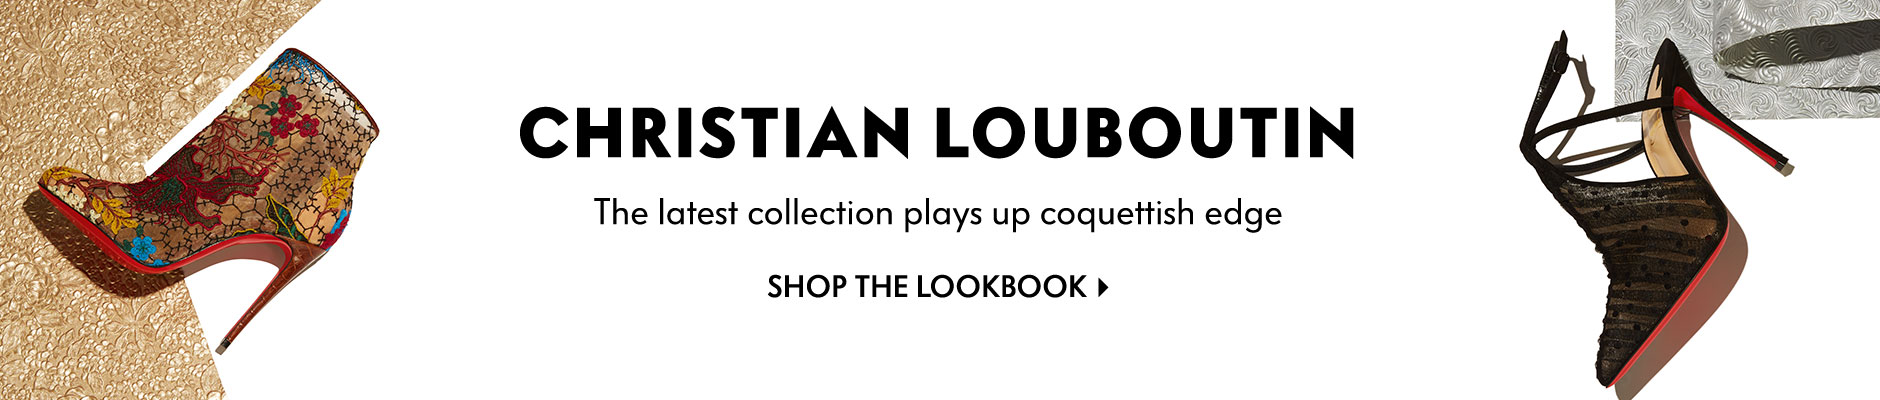 Christian Louboutin Lookbook